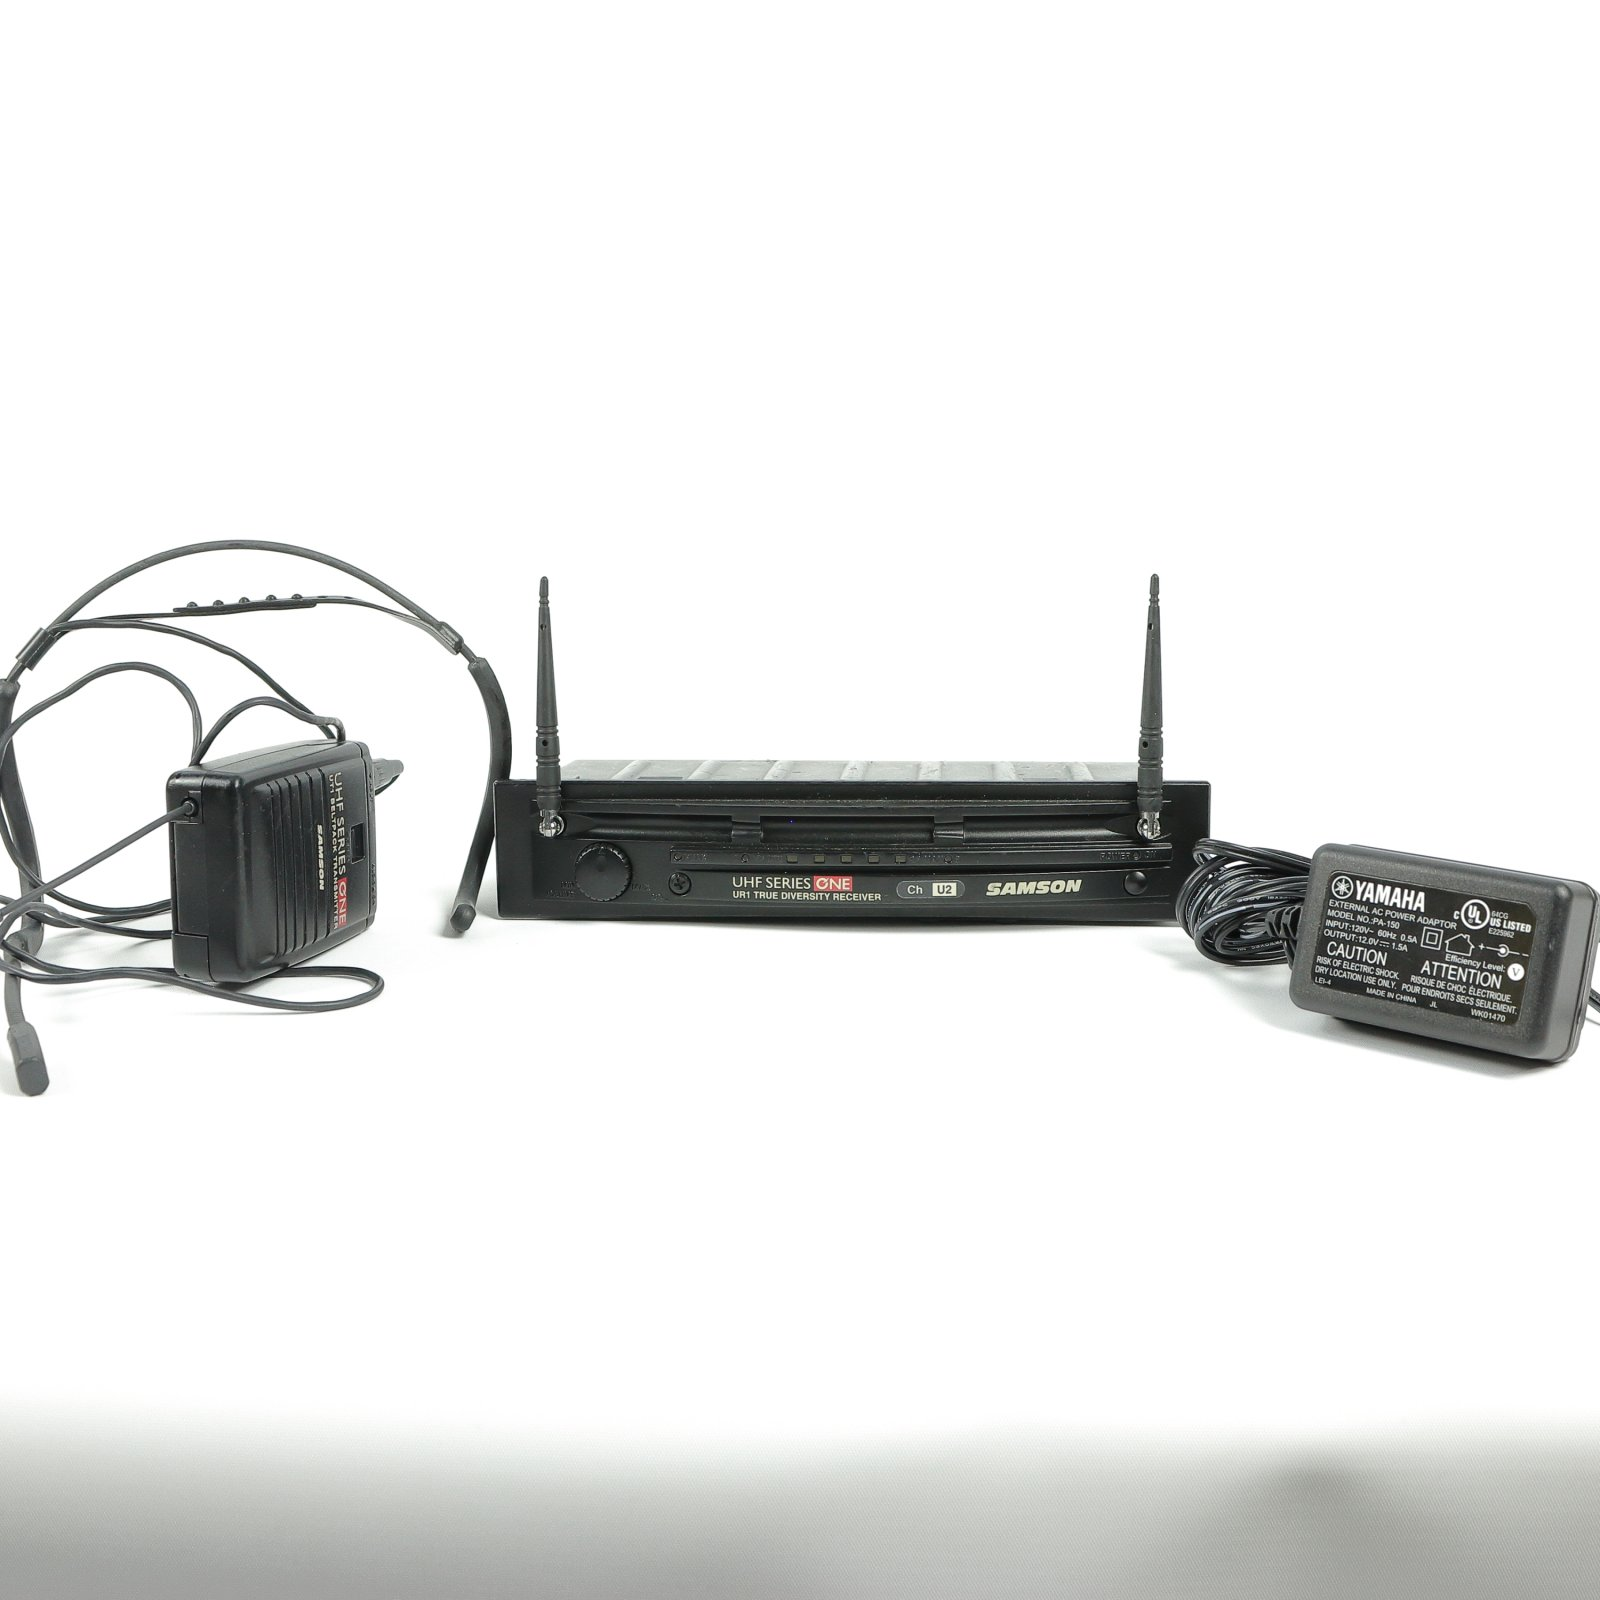 Samson UHF Series One Wireless Headset Mic and Receiver (USED)